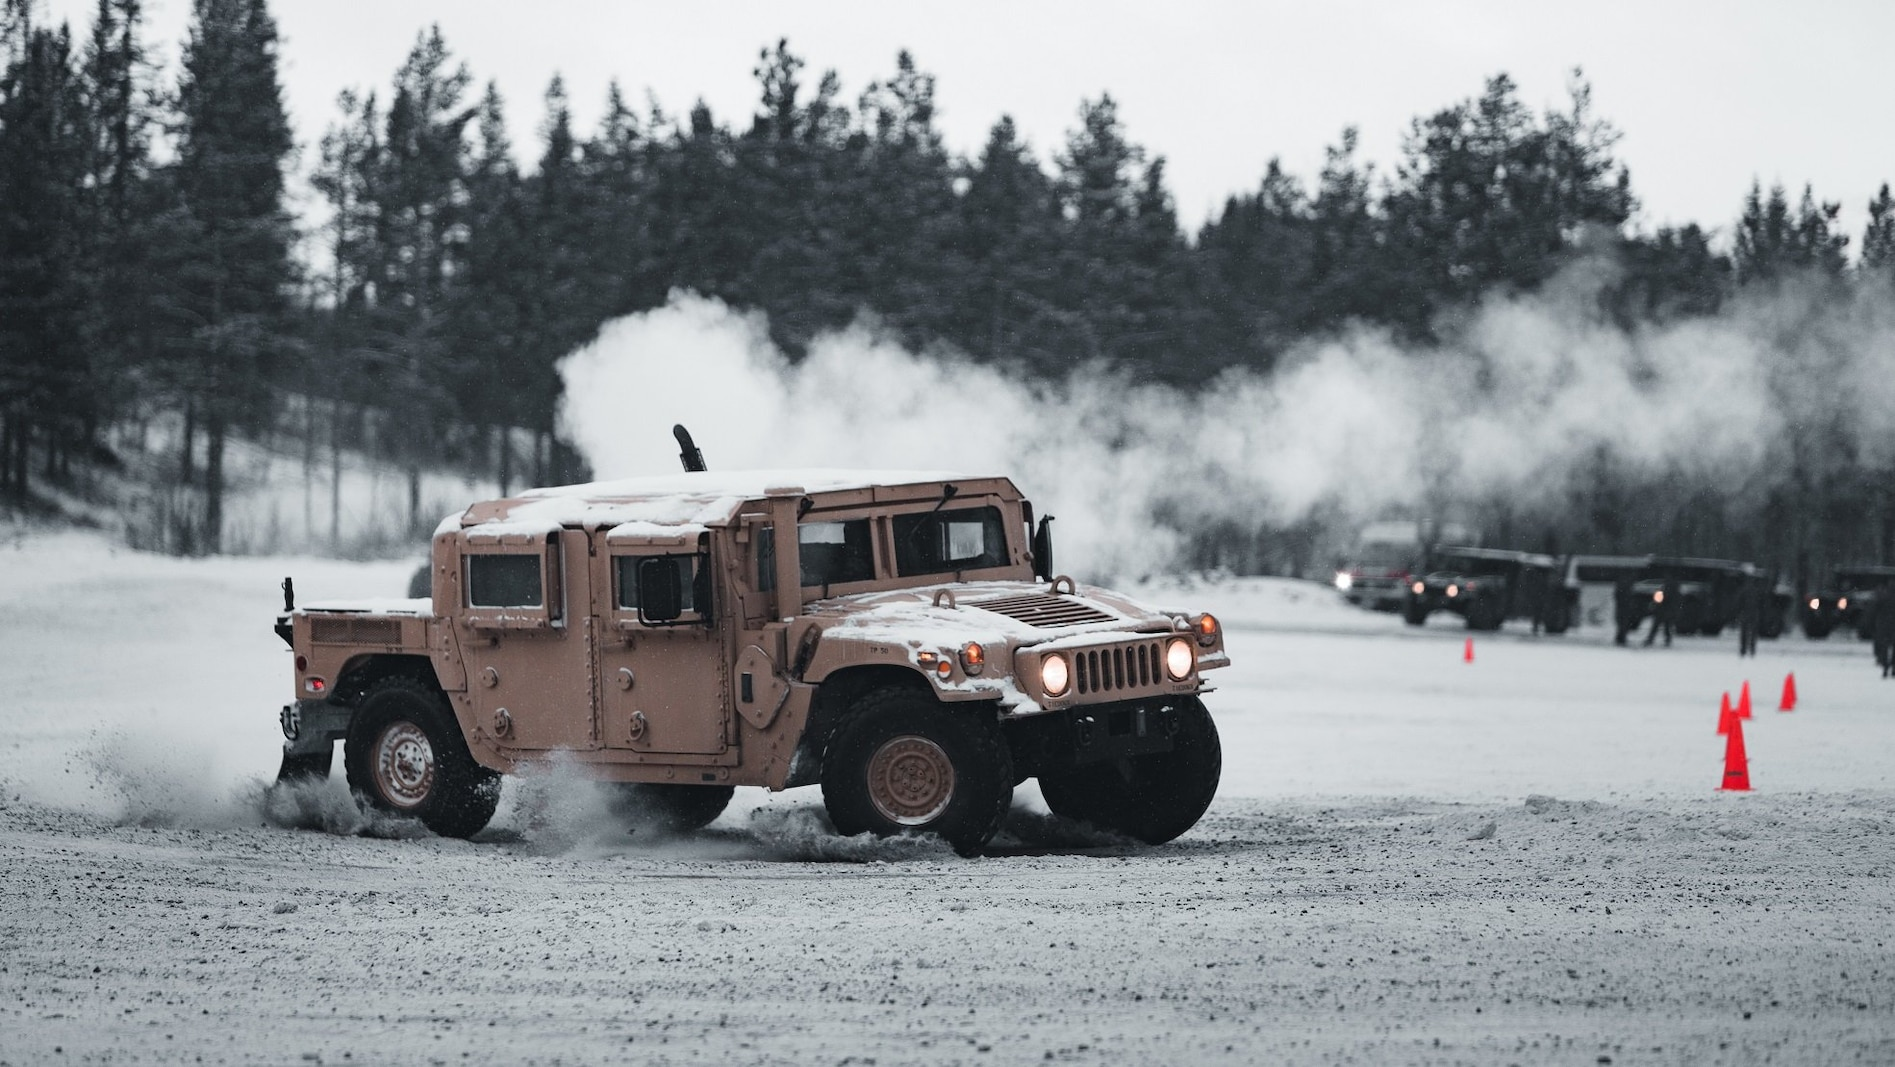 U.S. Marines with Marine Rotational Force Europe 21.1 (MRF-E), Marine Forces Europe and Africa, participate in a tactical drivers training course in Setermoen, Norway, Feb. 5, 2021.